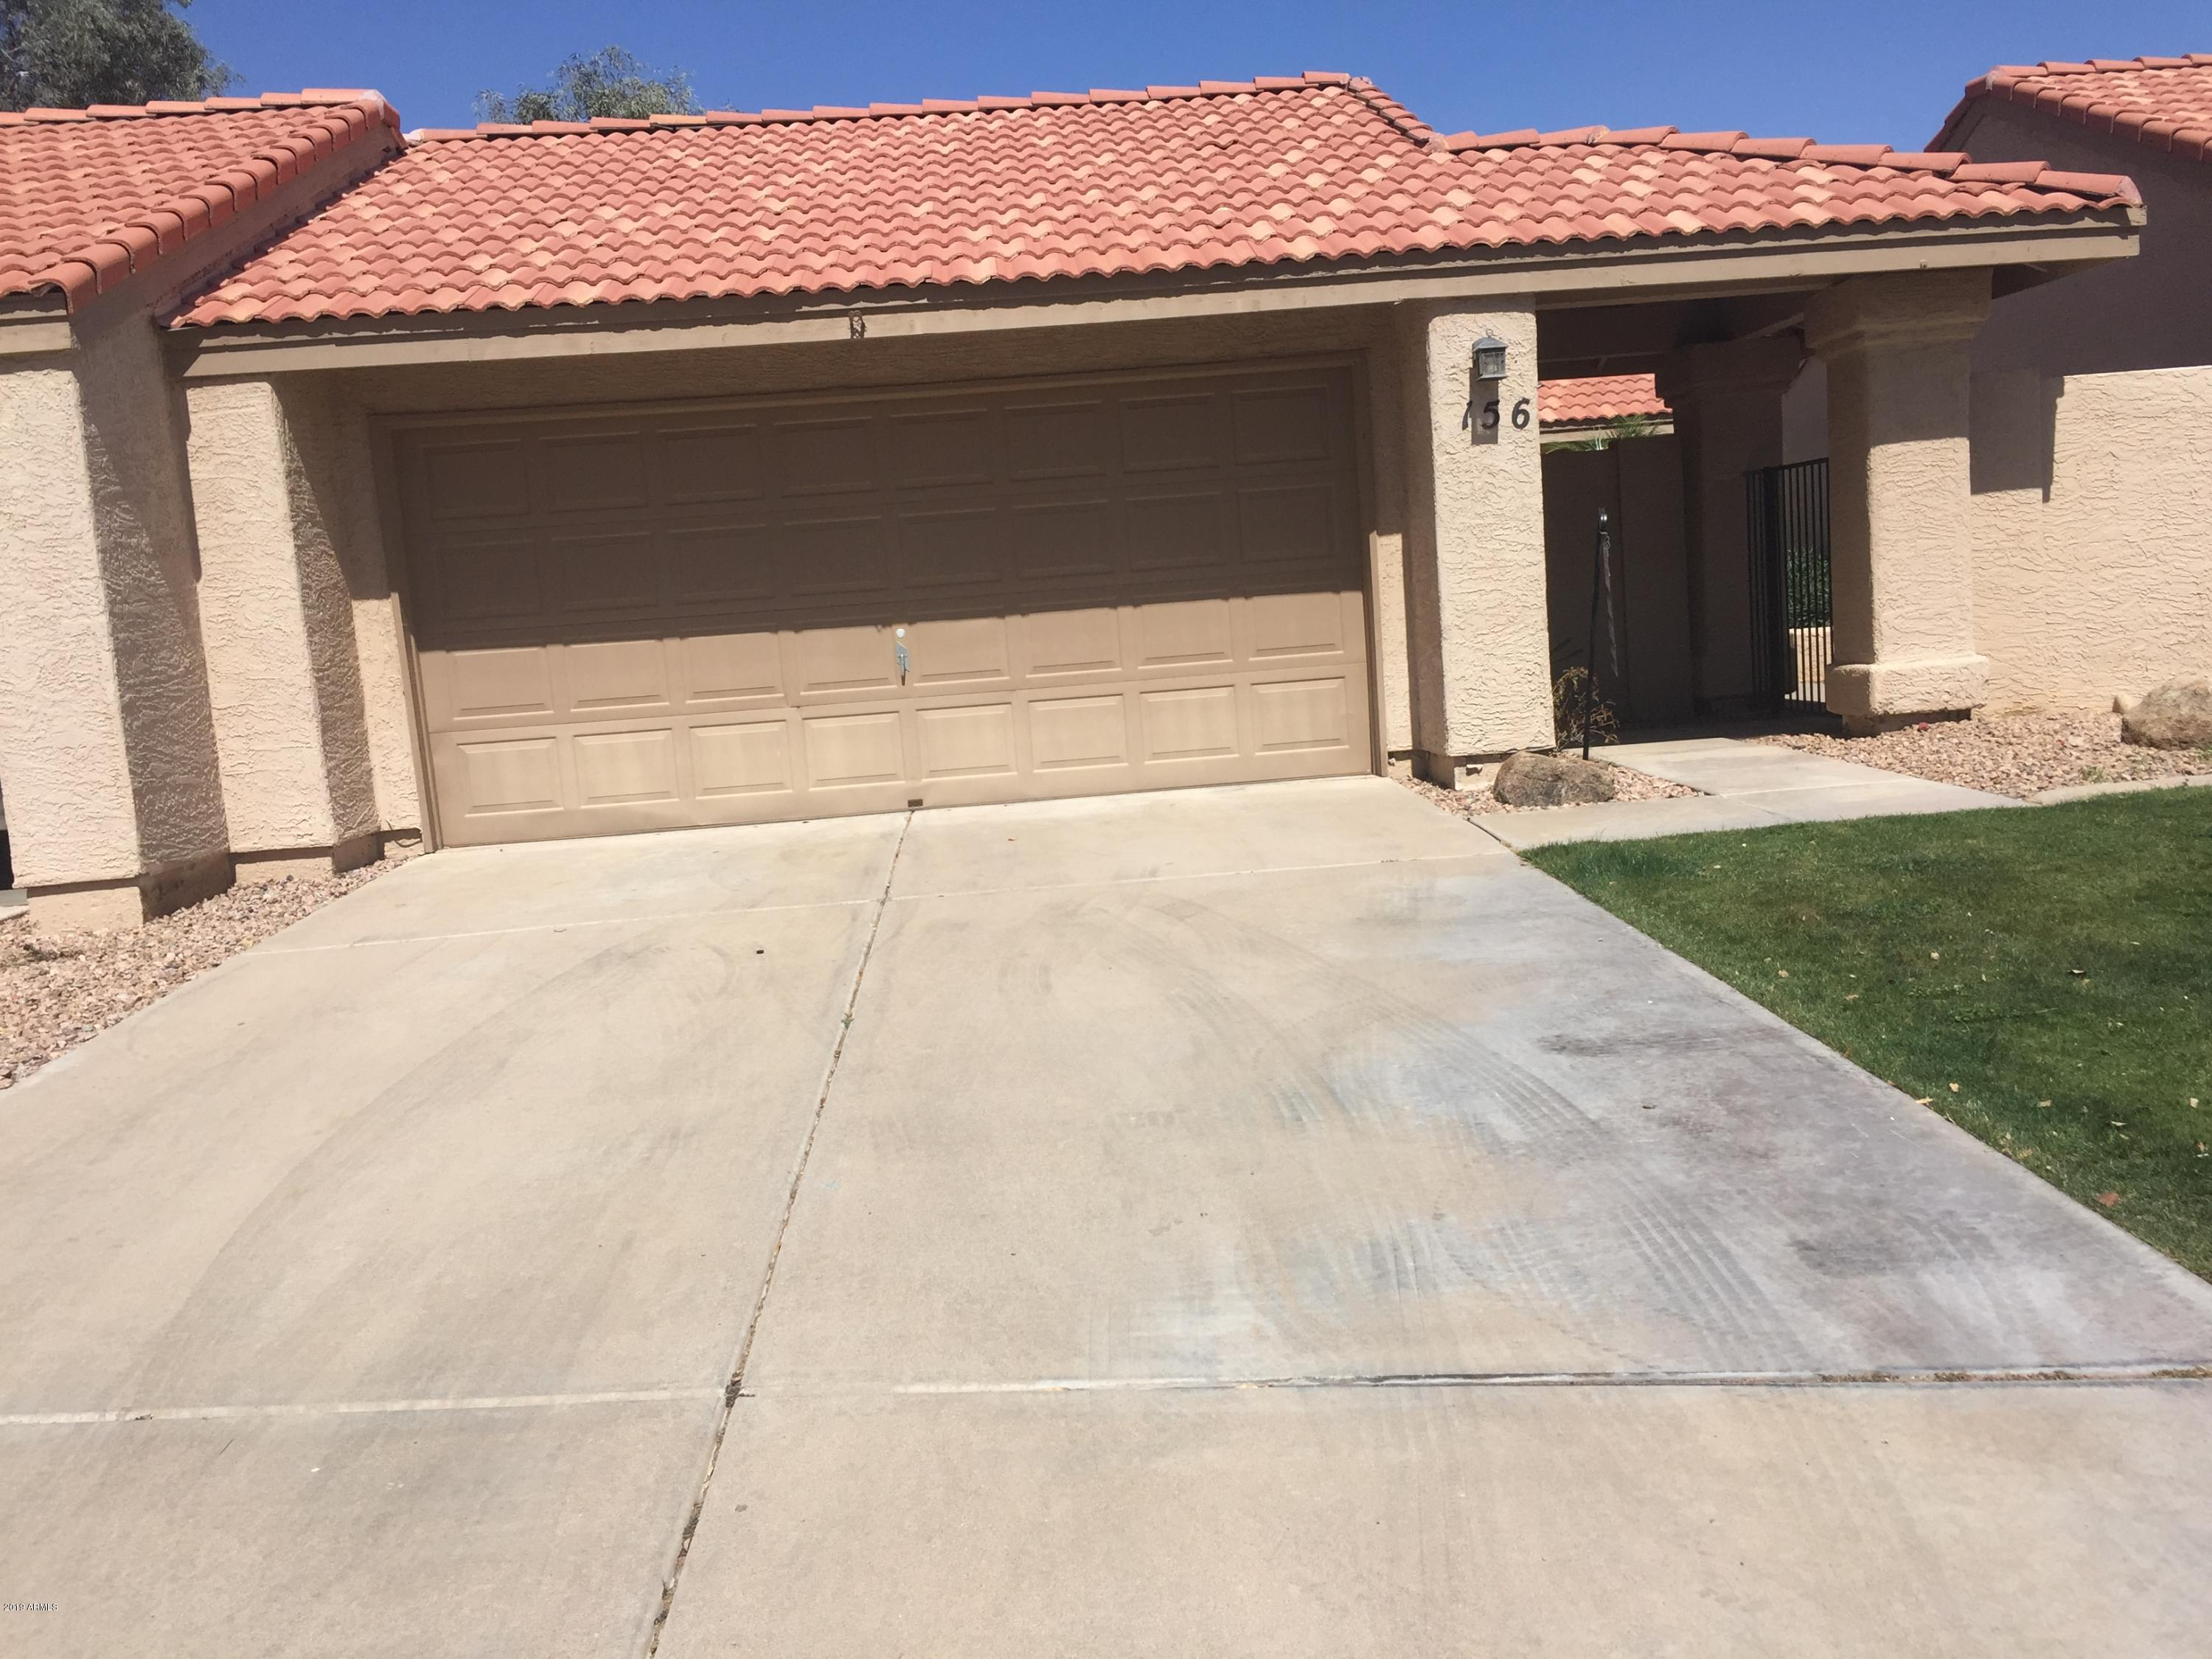 Photo of 945 N PASADENA -- #156, Mesa, AZ 85201